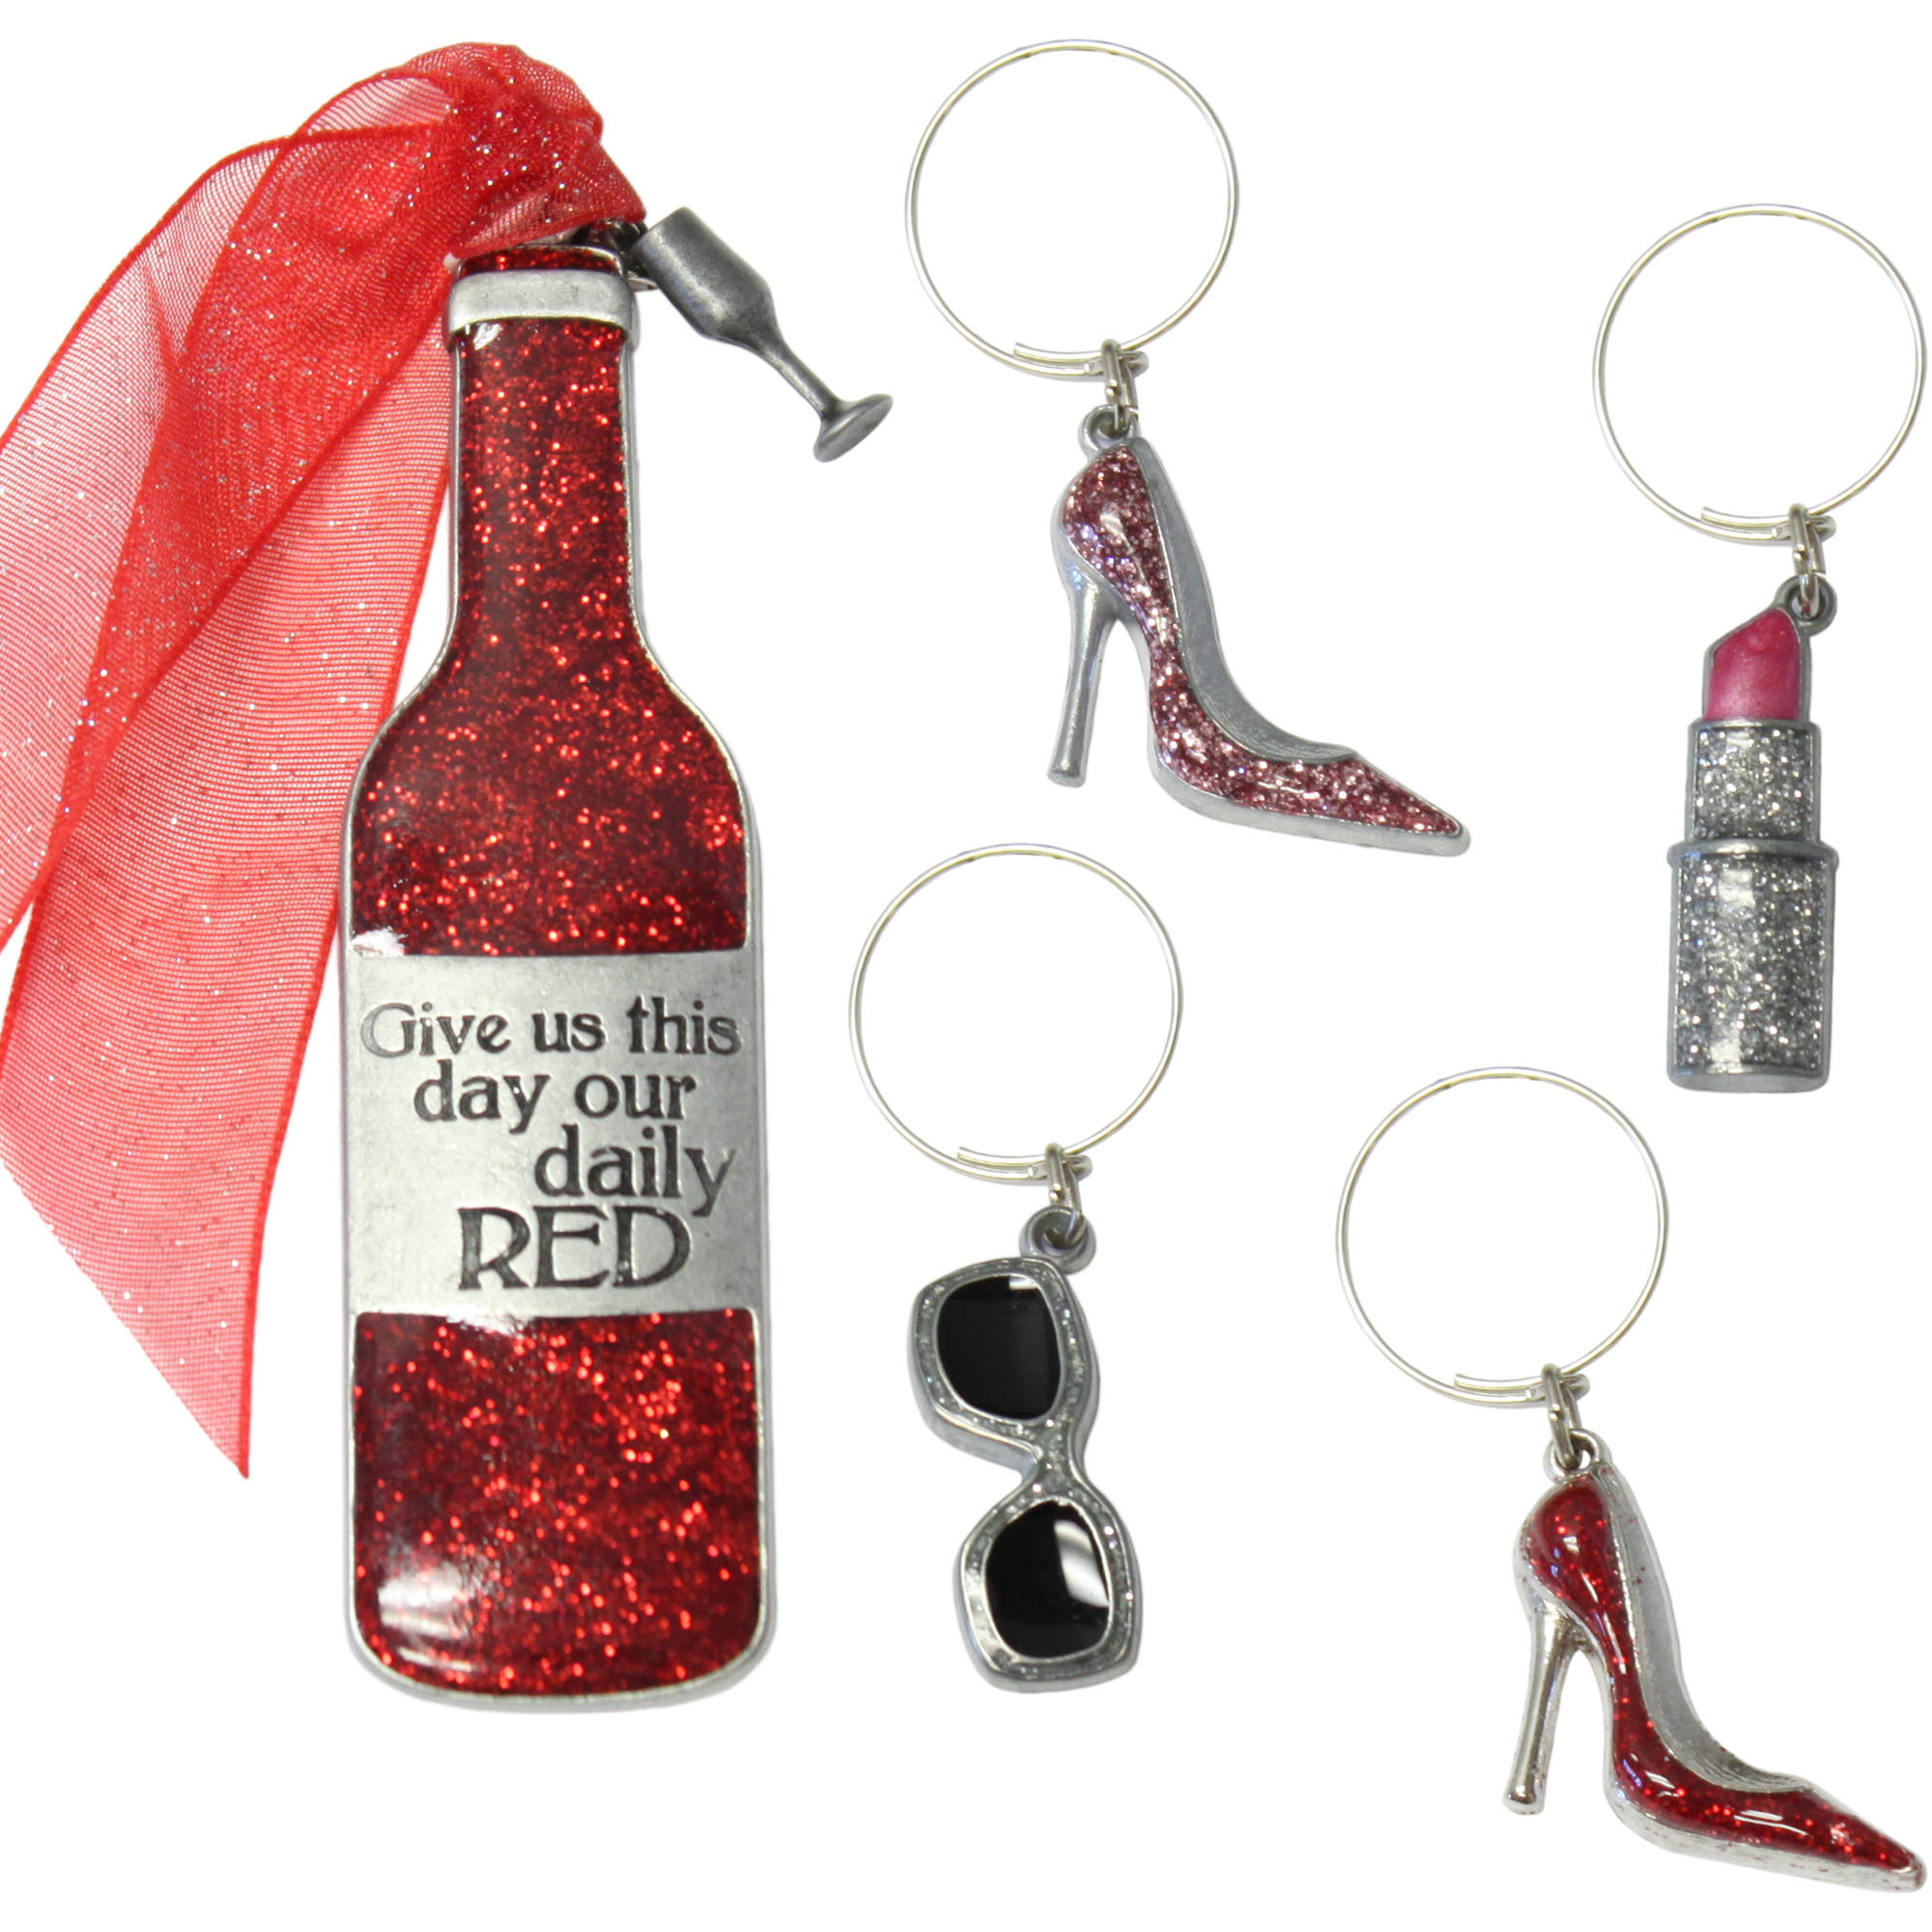 Gloria Duchin Ladies' Night Out Wine Bottle Ornament and Drink Charms Set